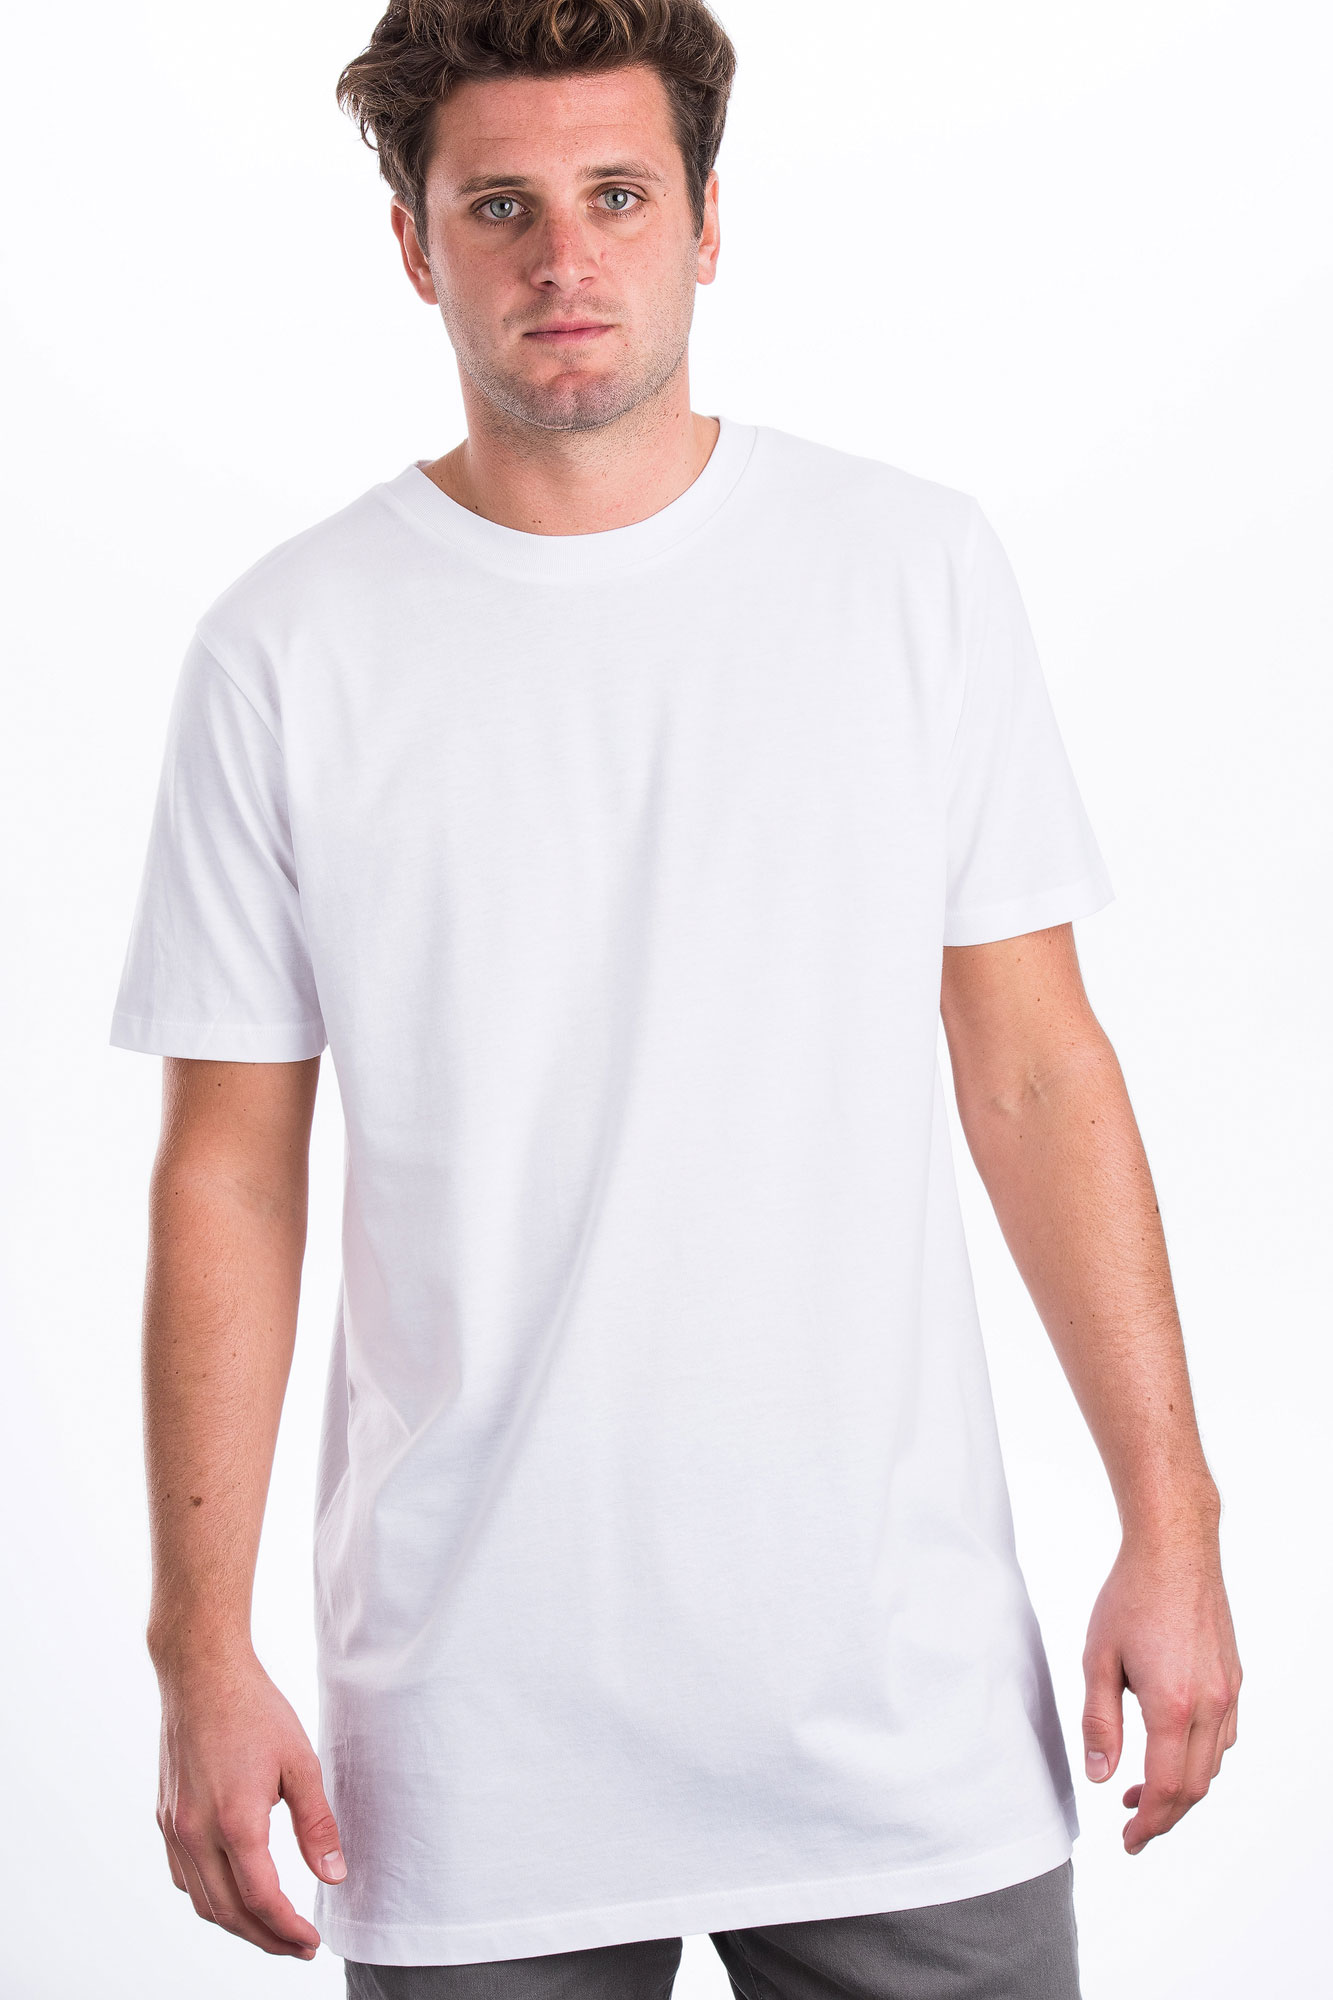 M-EP13-Long-Tee-Fair-Trade-Maenner-T-Shirt-White